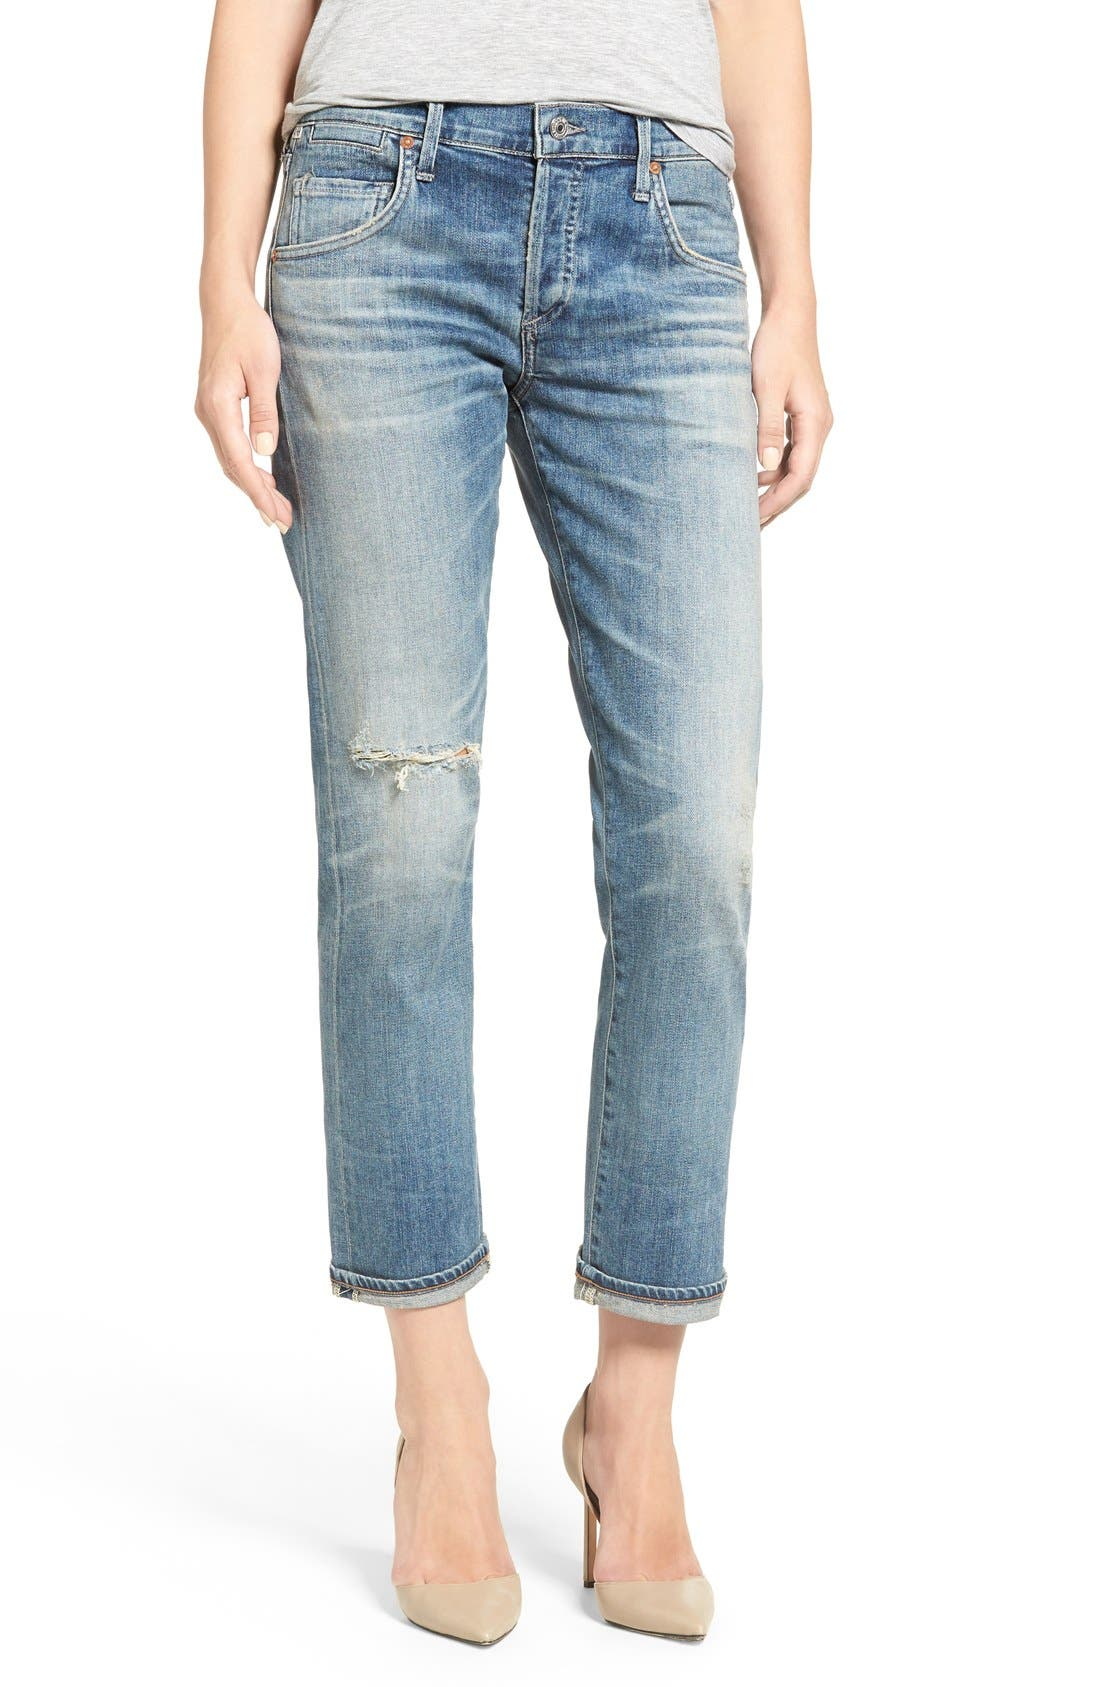 'Emerson' Ripped Slim Boyfriend Jeans,                             Main thumbnail 1, color,                             Roseland